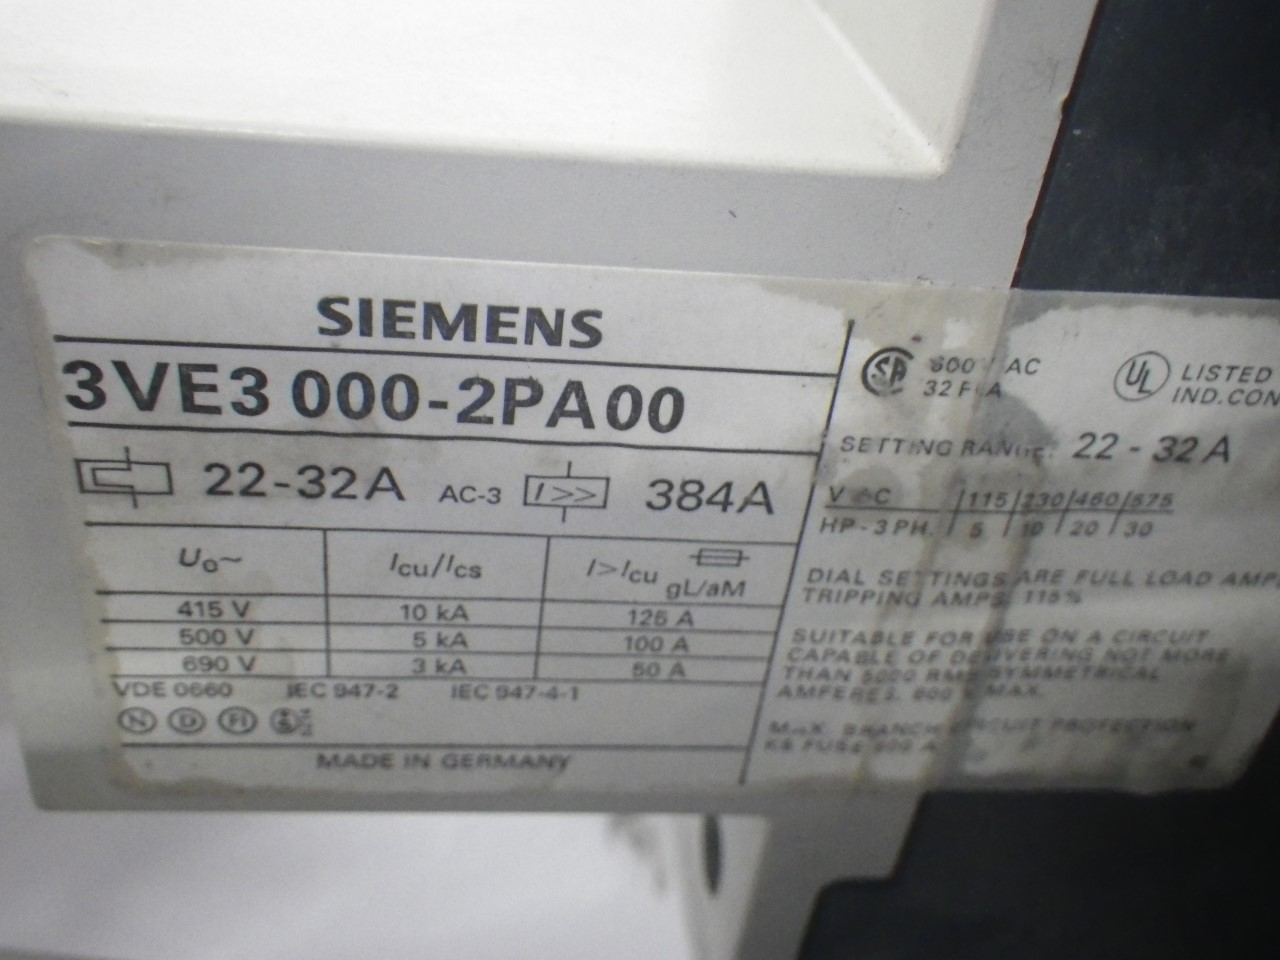 IMGP68893VE3-000-2PA00Siemens 3ve3-000-2pa00 Starter Protector 22-32a (Used Tested) (11)